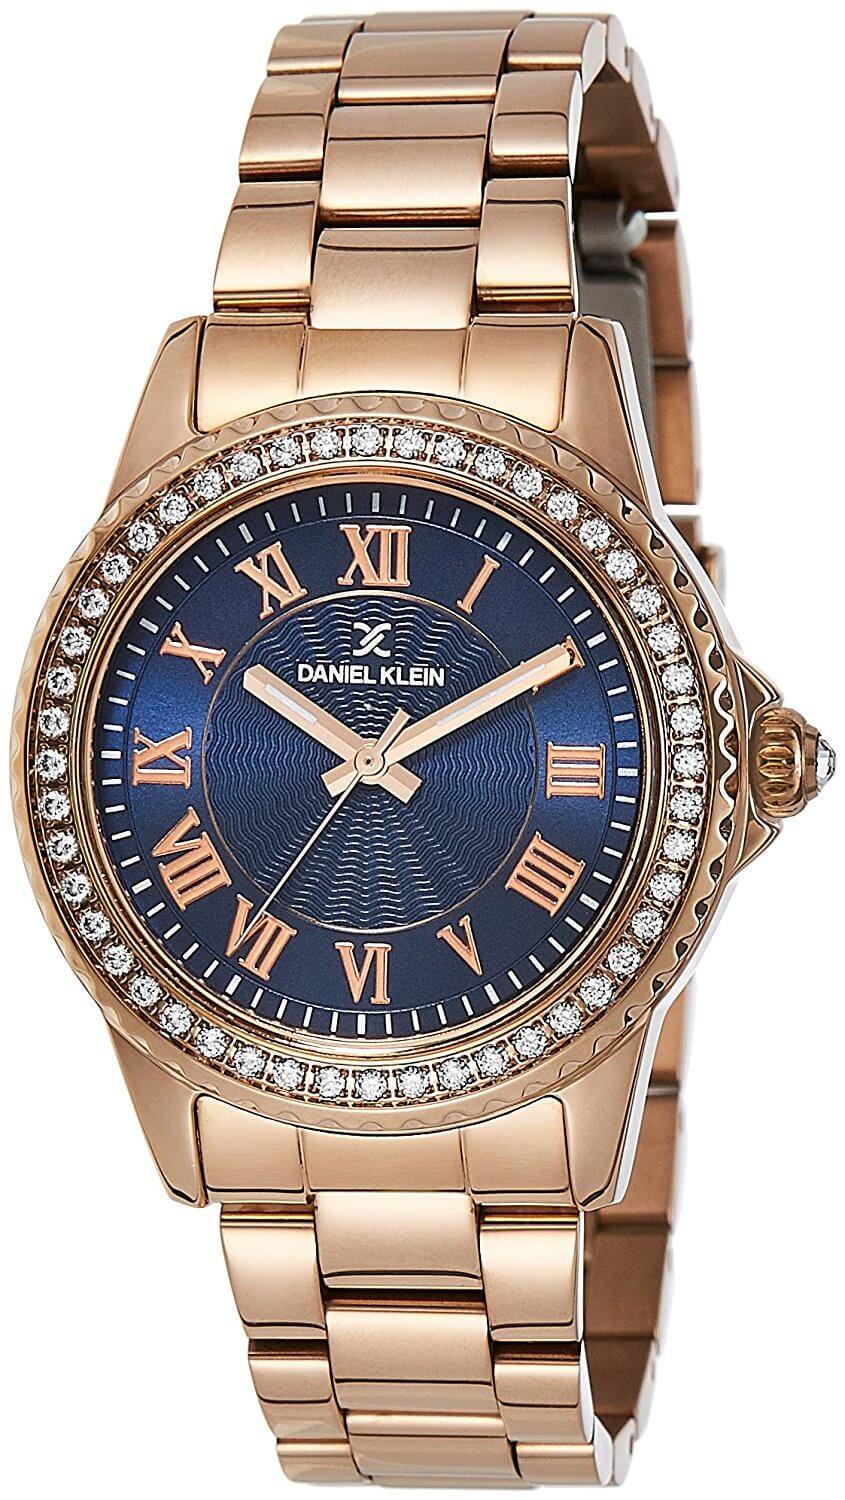 Daniel klein watches for women up to 50 off watchista for Watches for women